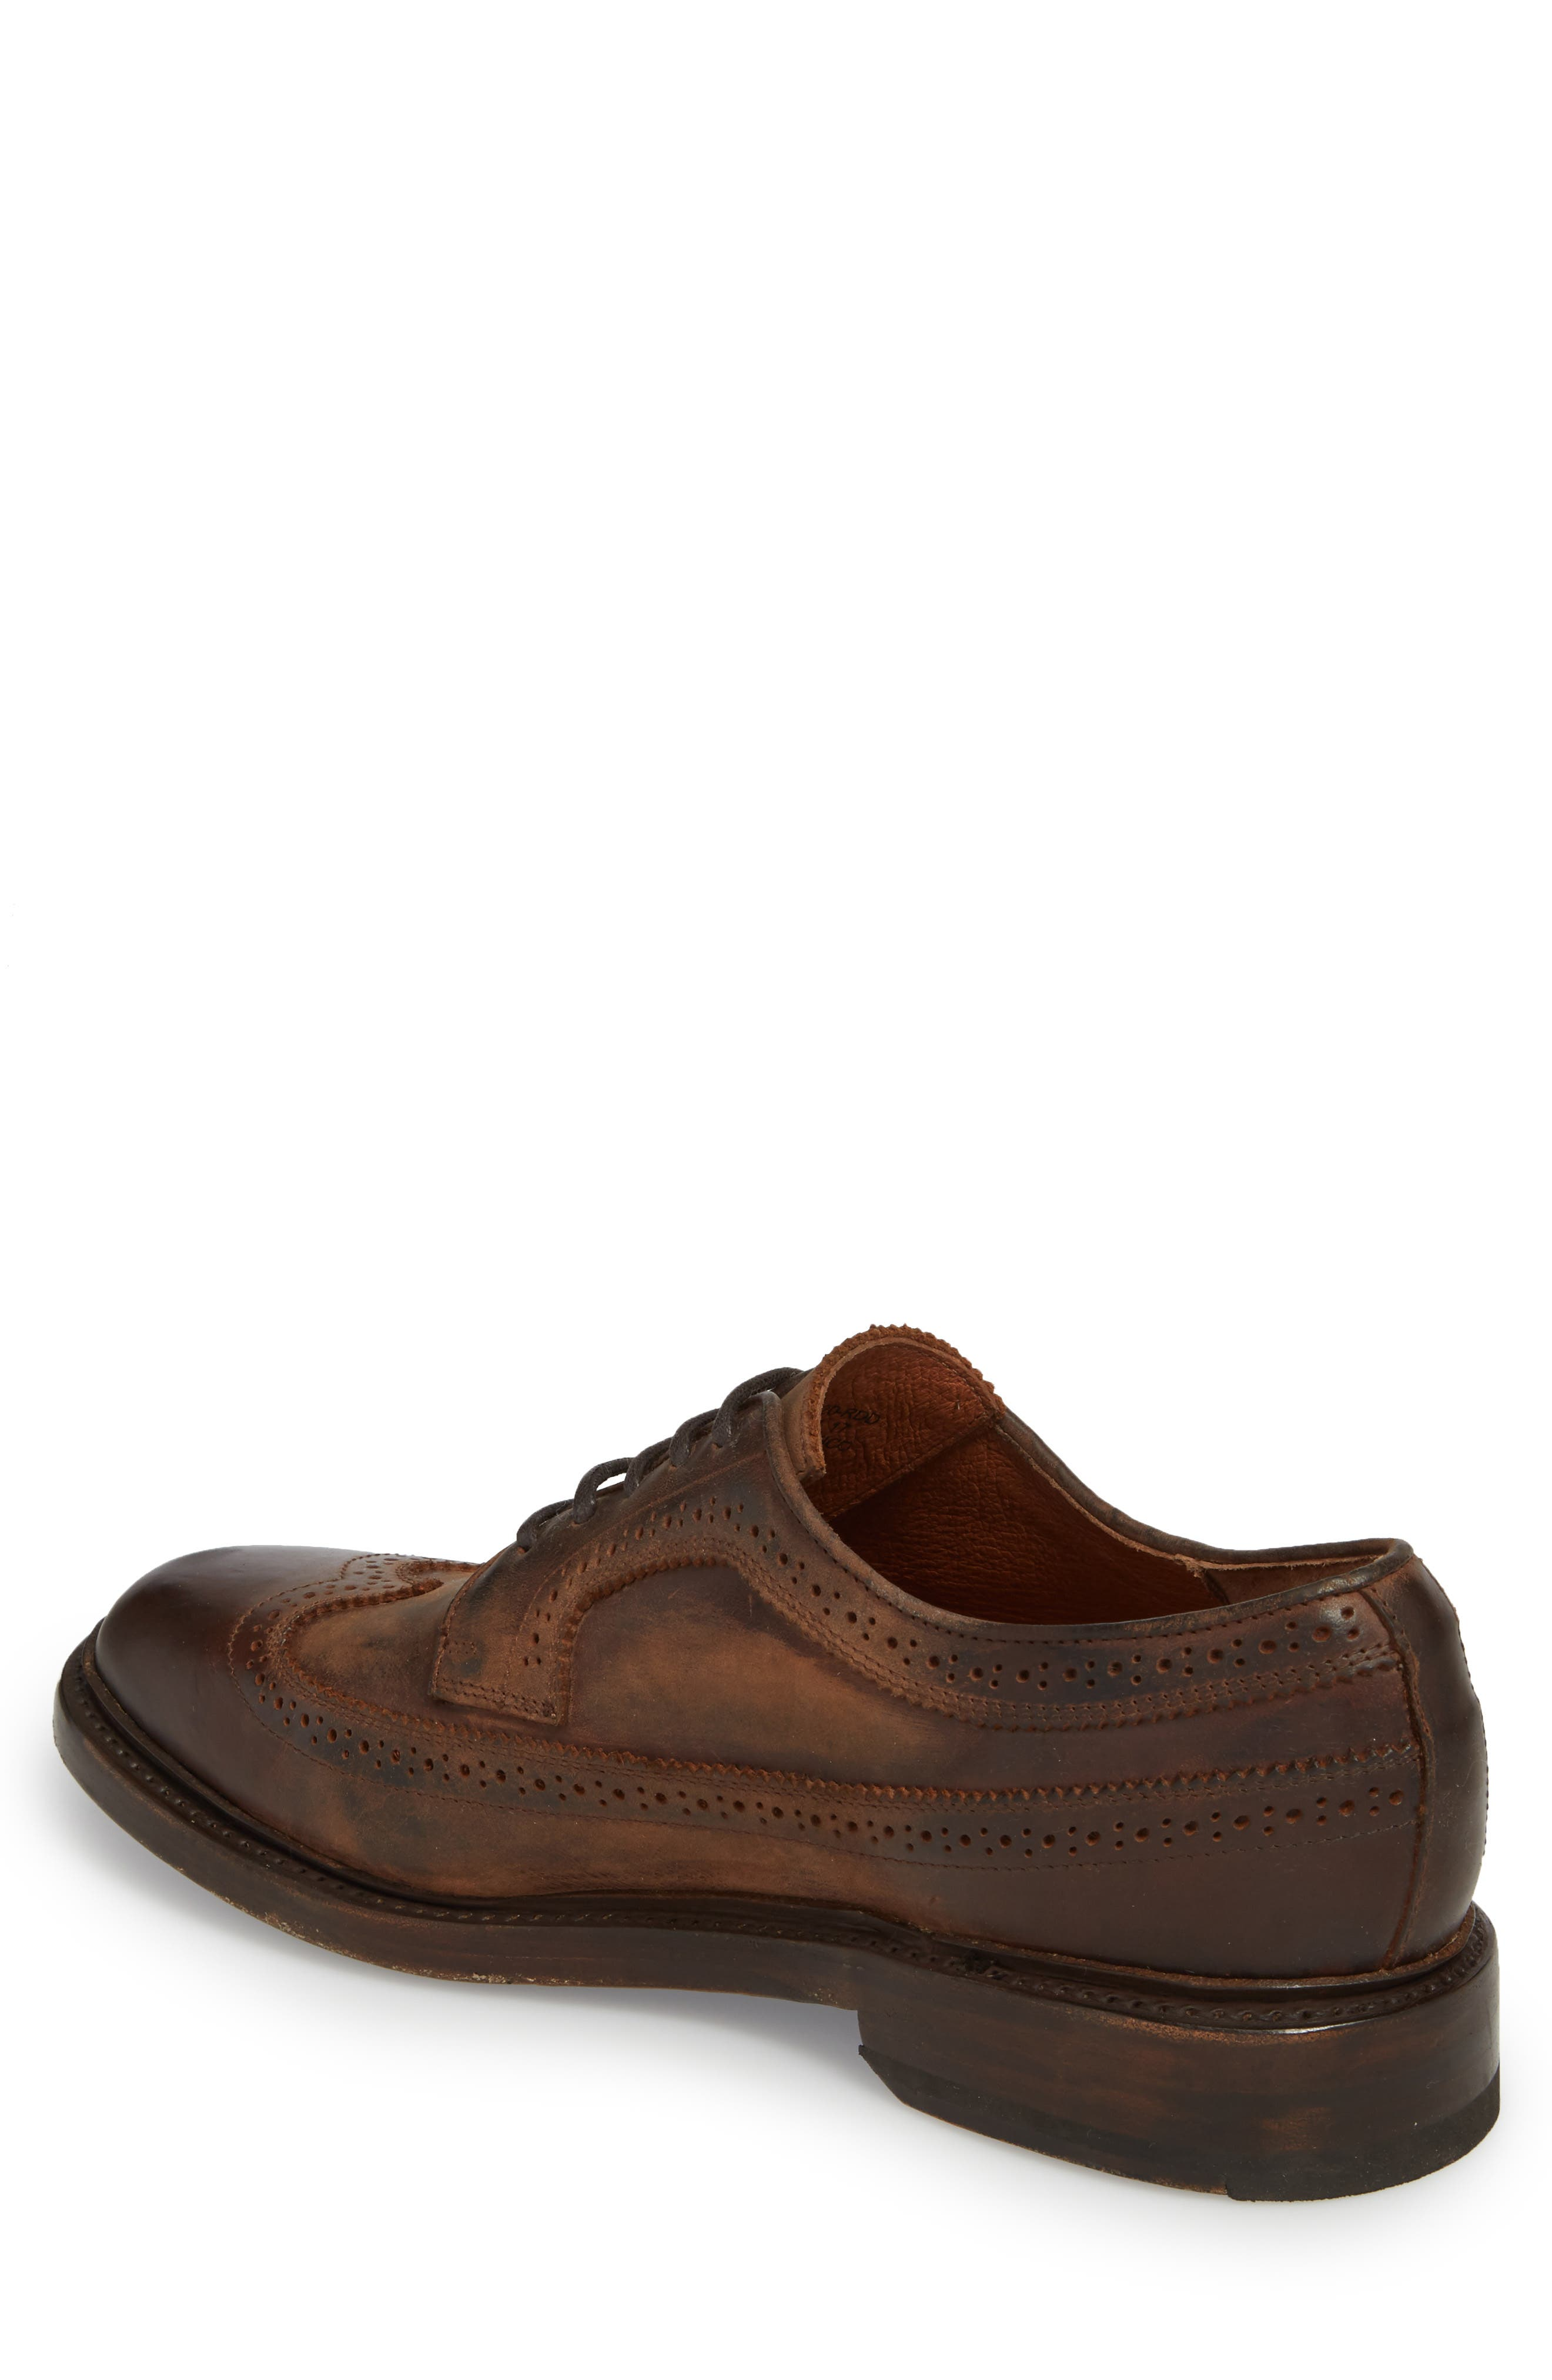 Jones Wingtip,                             Alternate thumbnail 2, color,                             REDWOOD LEATHER